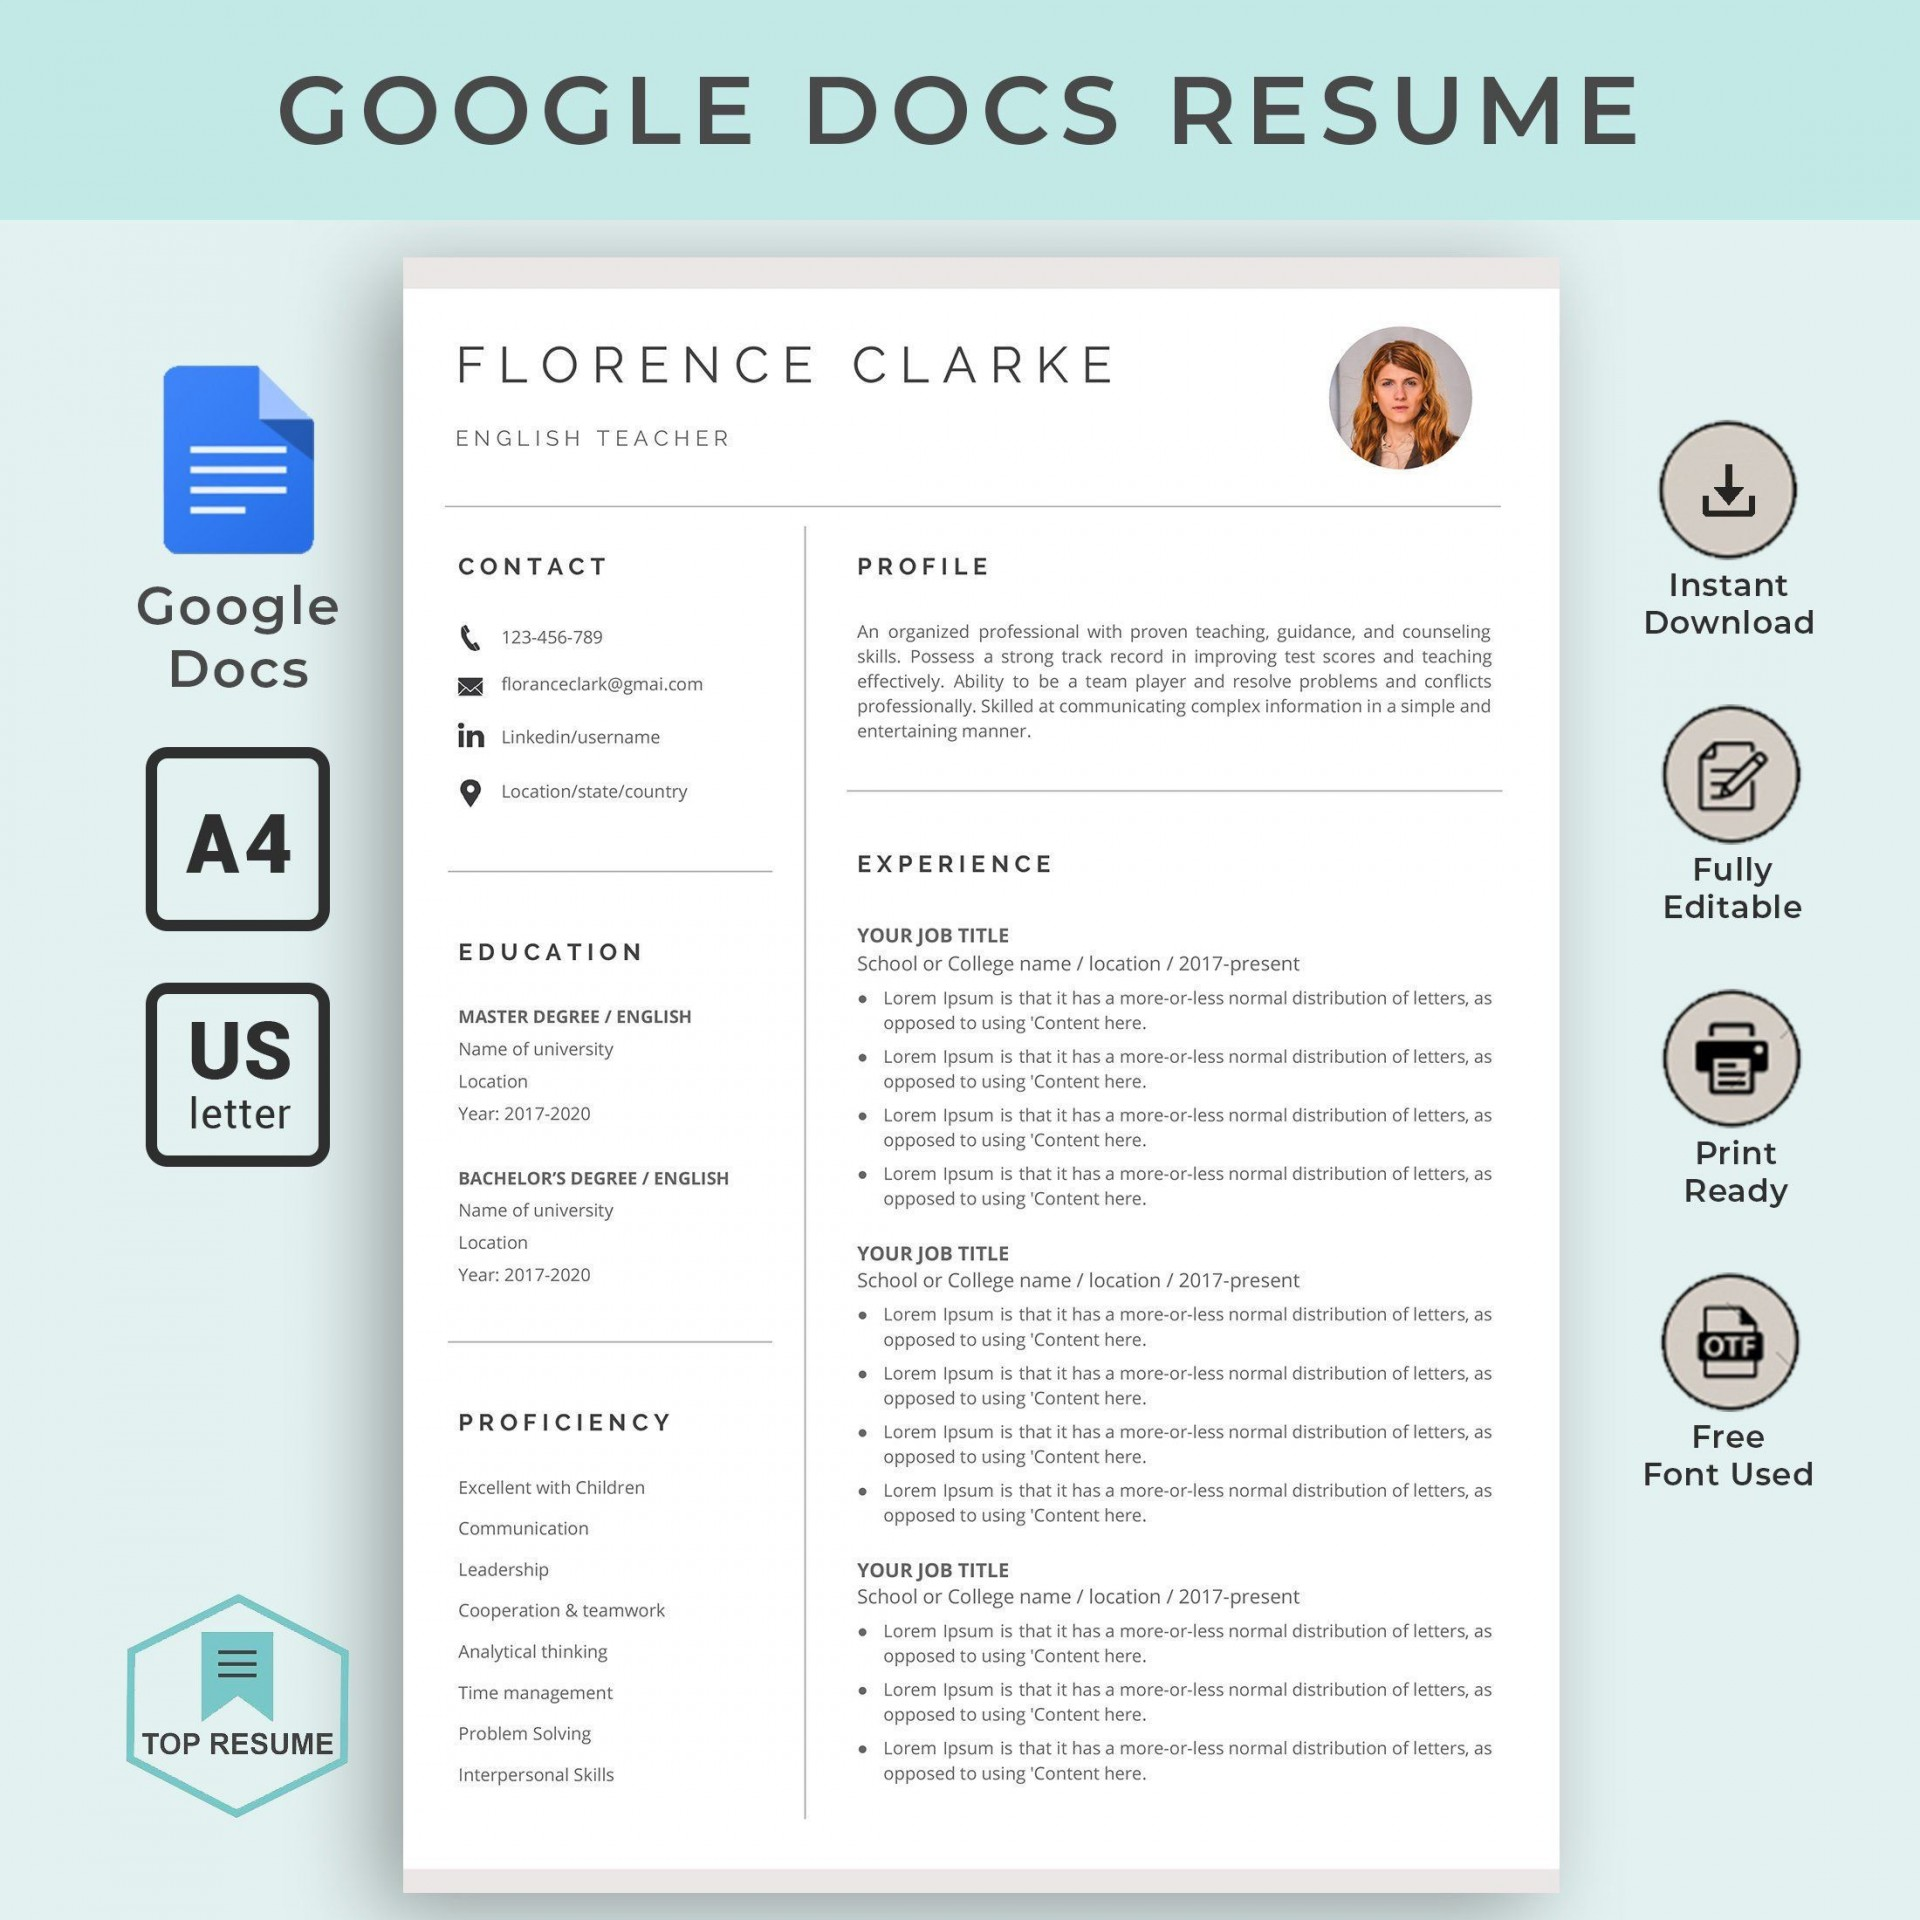 000 Archaicawful Entry Level Resume Template Google Doc Example  Docs1920